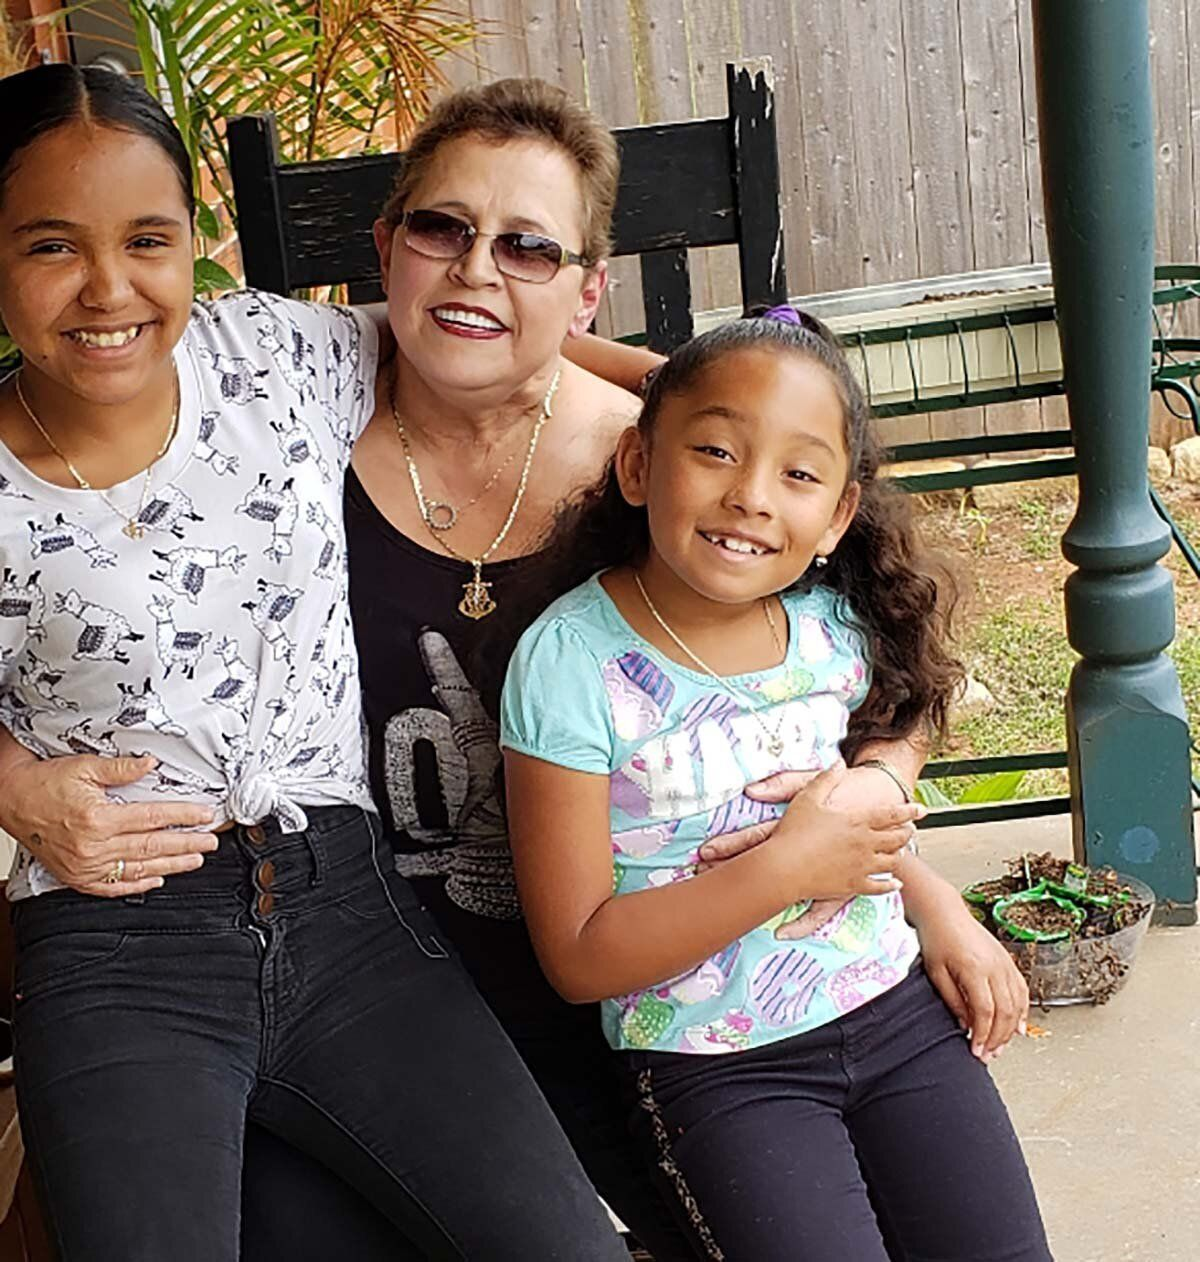 Christine Zuniga is raising her granddaughters Victoria and Alejandra while their parents are incarcerated. When the coronavi